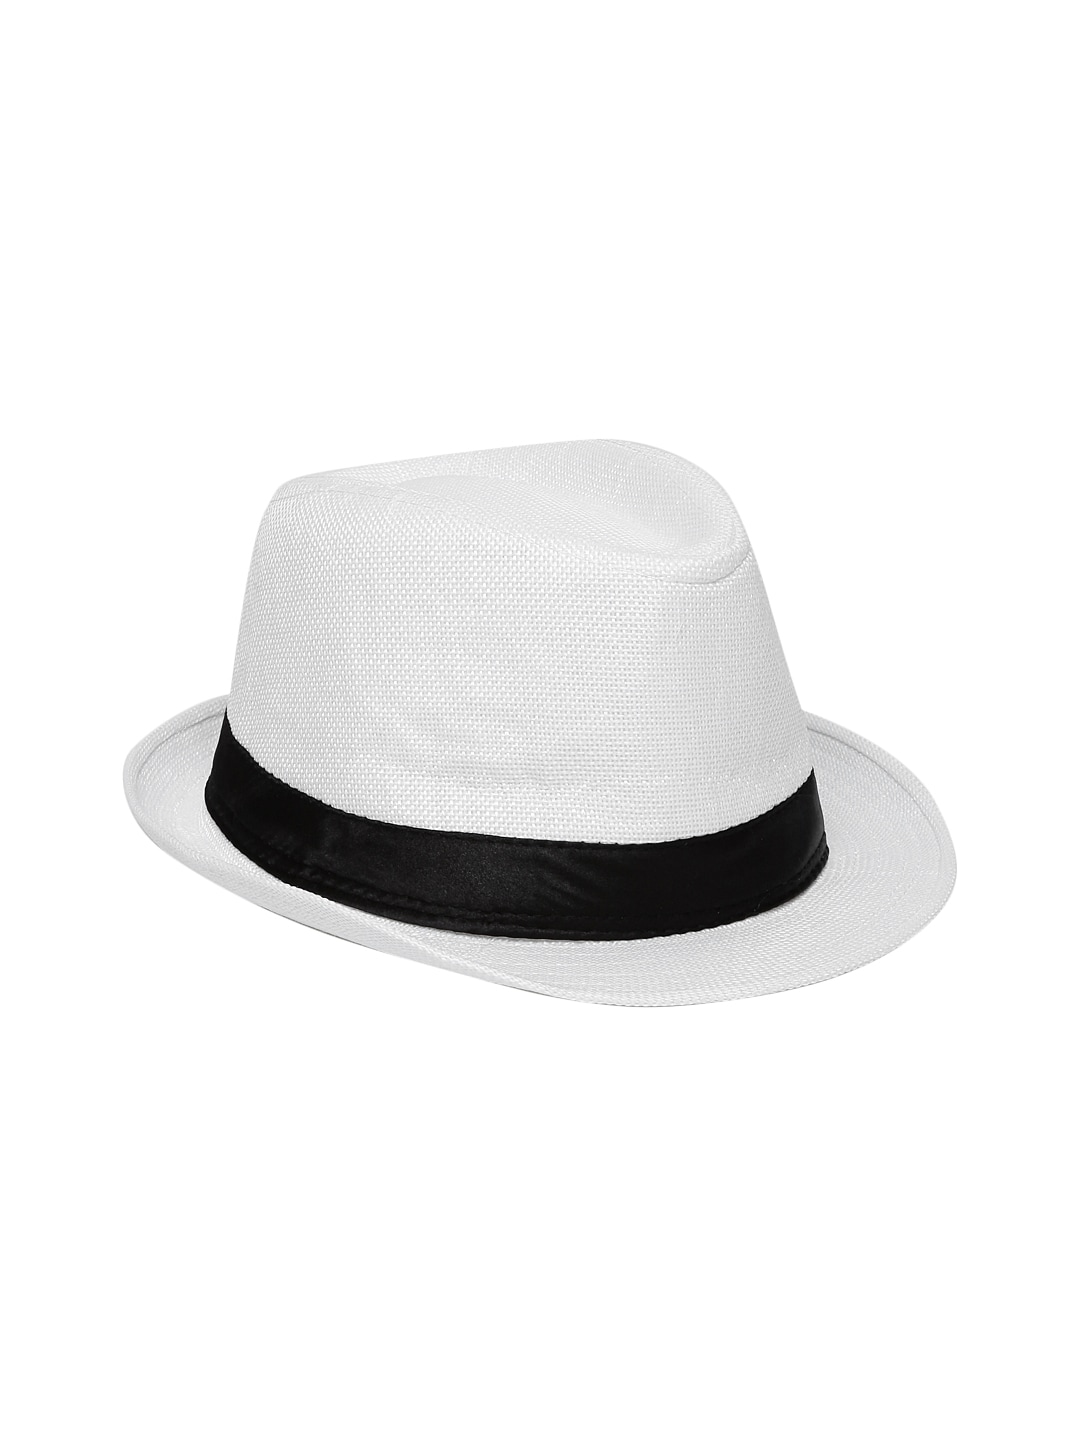 1961f7e298b12 Fedora Hat - Buy Fedora Hats Online at Best Price